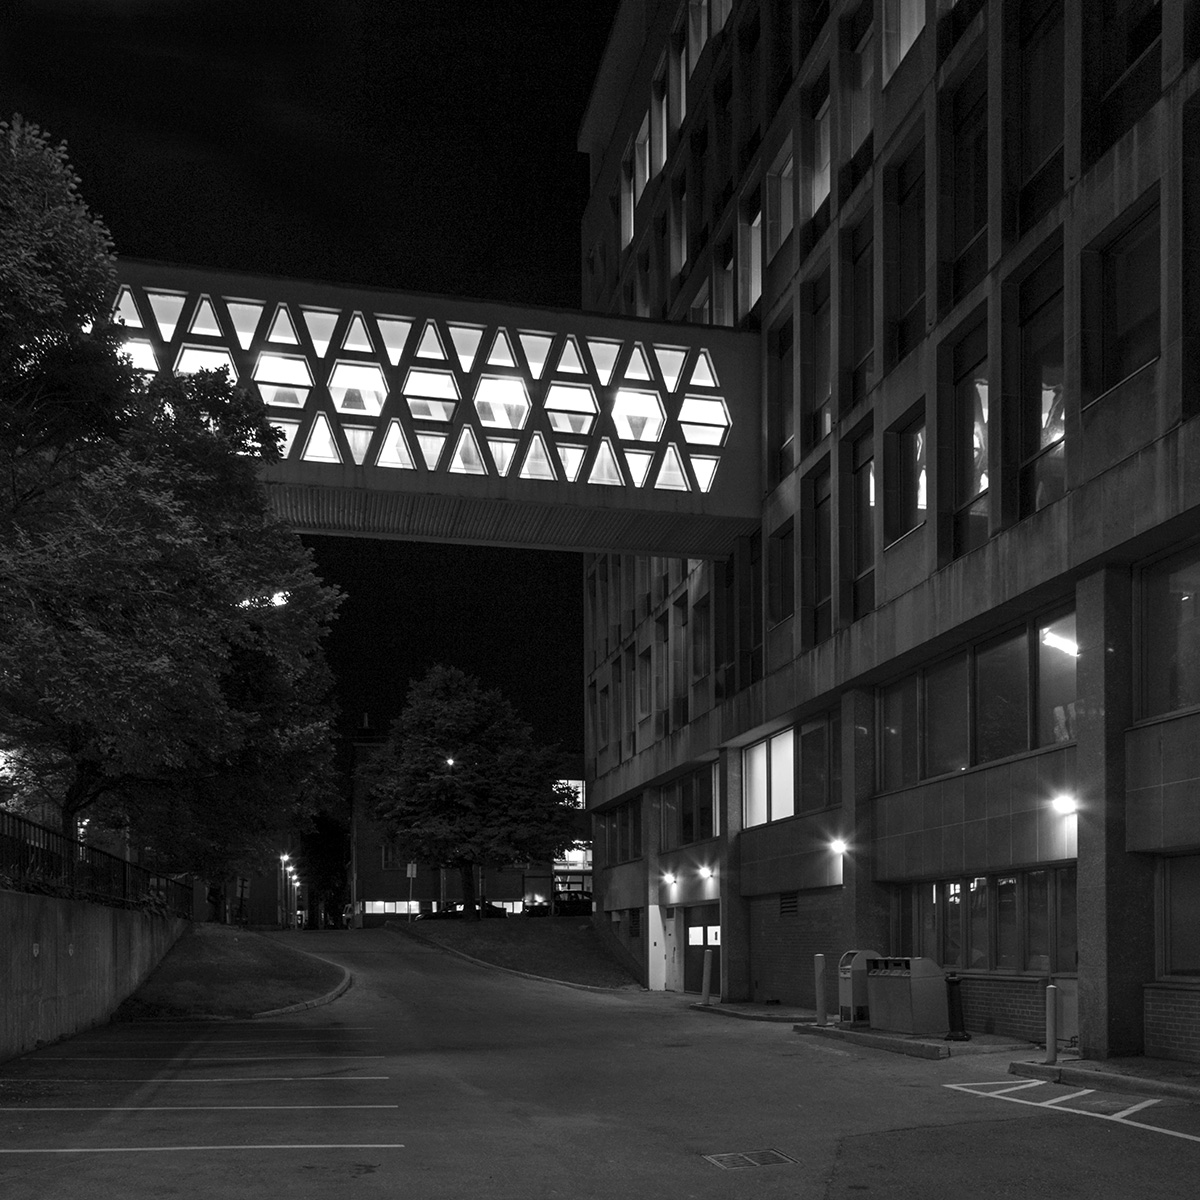 20140930. A retro pedestrian overpass brightens the night. Unive